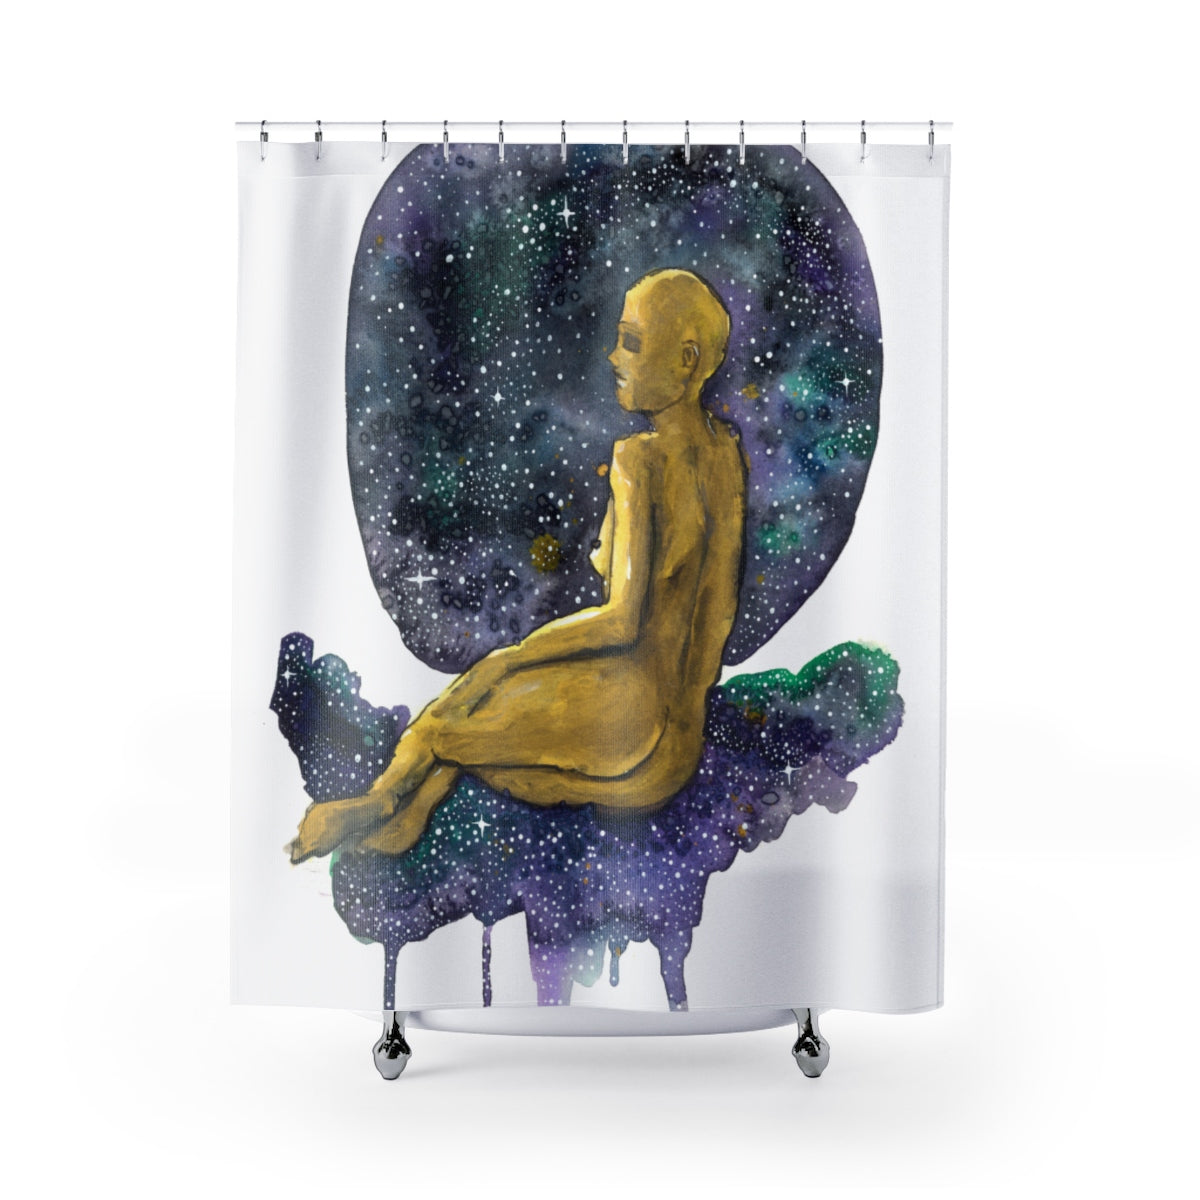 Golden Girl Shower Curtain, Home Decor - Gravitational Pull Art